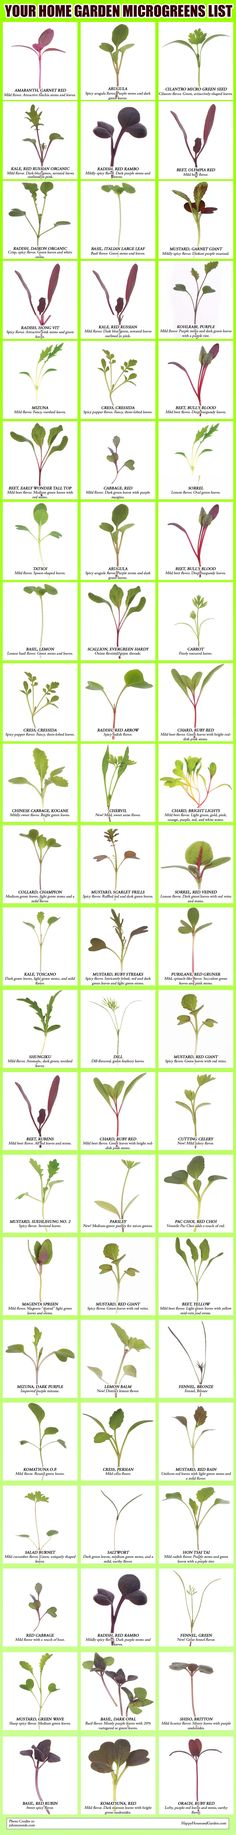 Your Home Garden Microgreens List